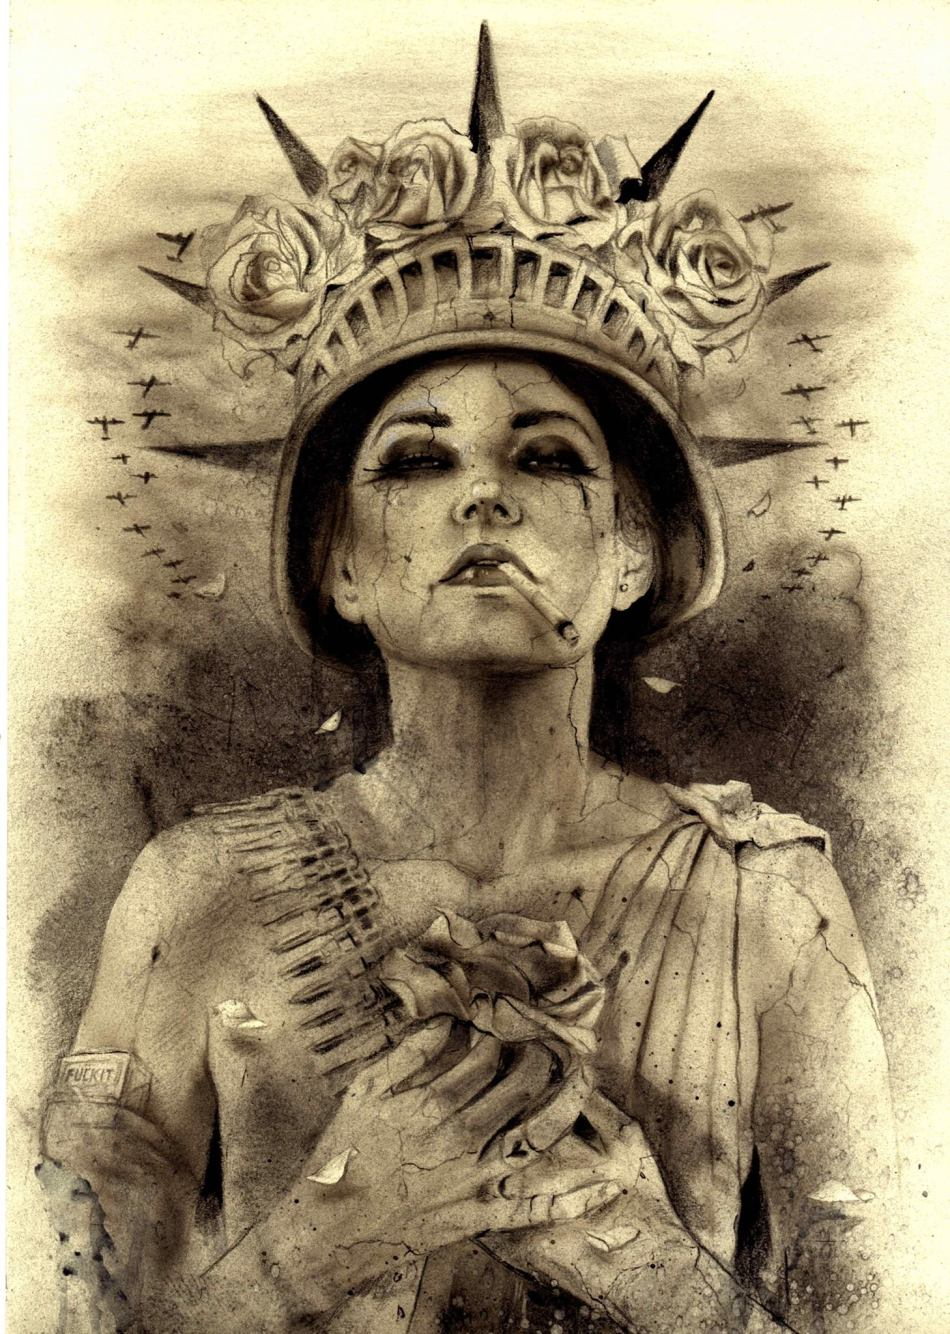 Statue of Libertease by Brian M. Viveros